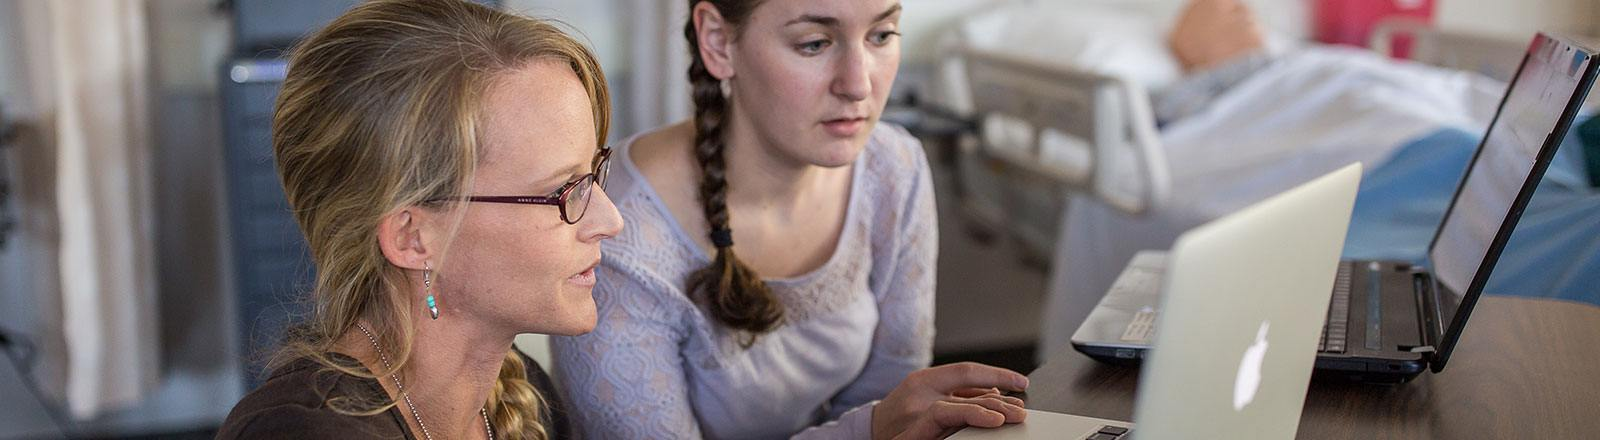 Student and professor observing computer screen